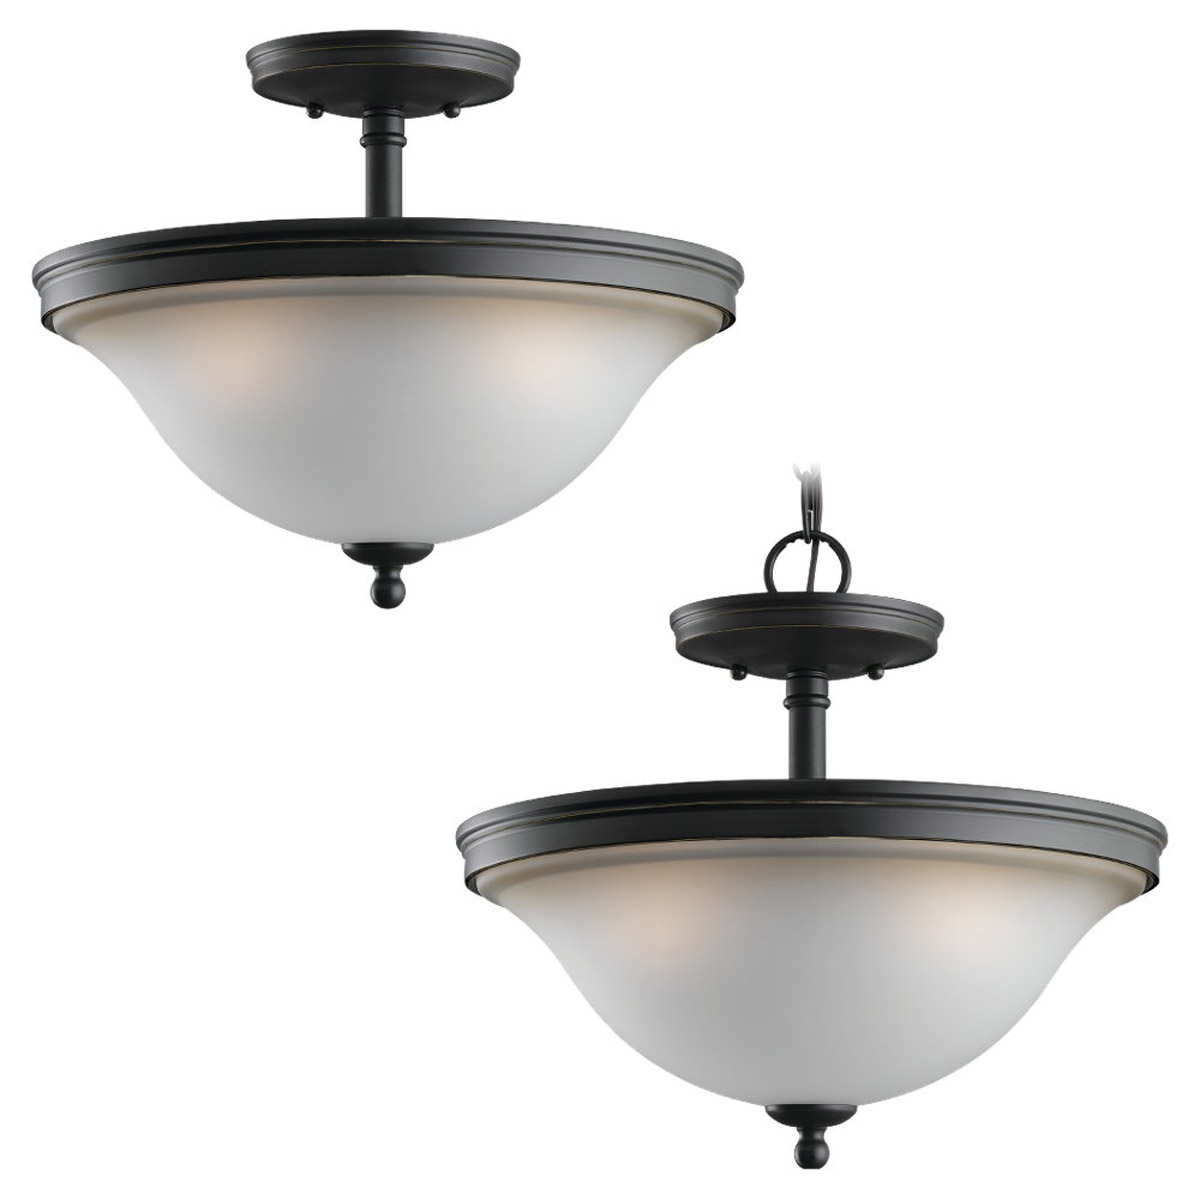 Sea Gull Lighting Gladstone 3 Light Semi-Flush Mount in Heirloom Bronze 77850-782 photo